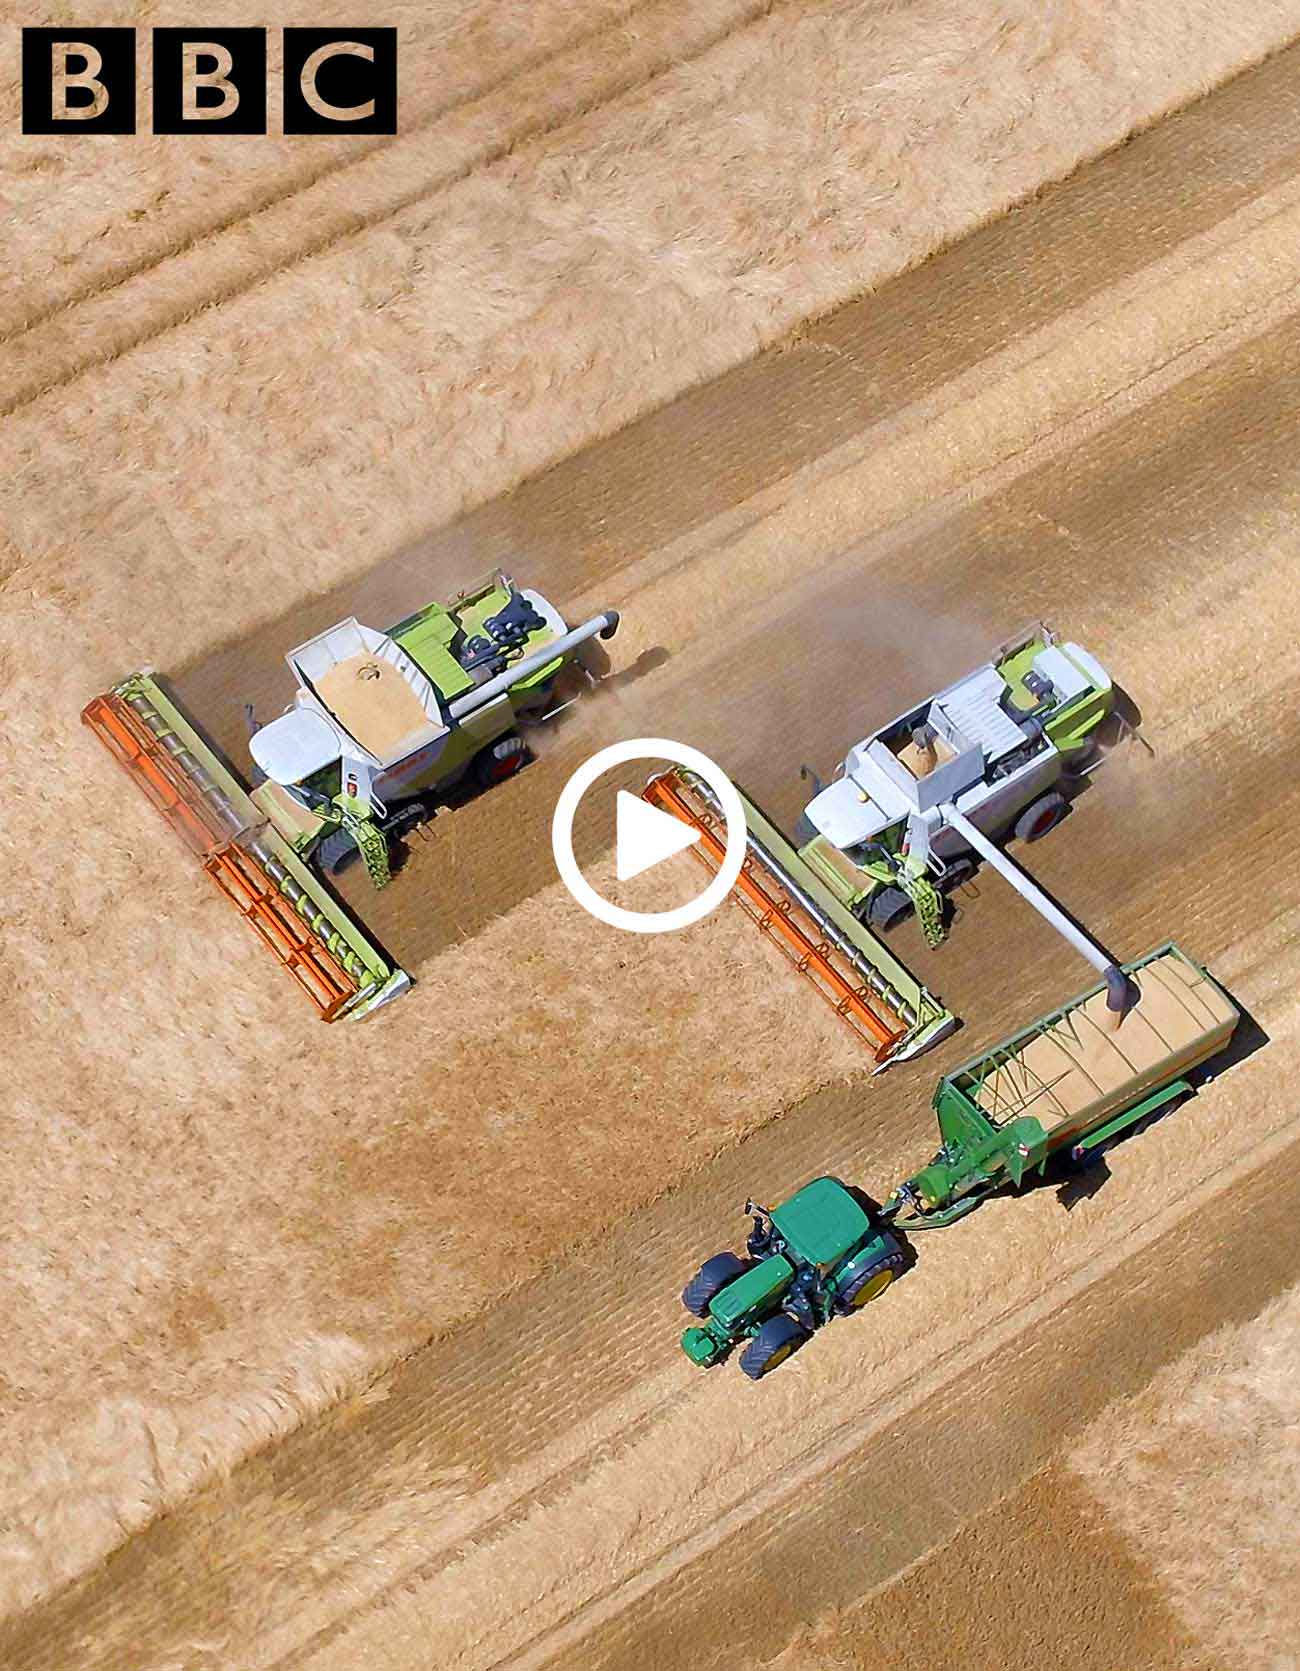 drone photo combine harvesters working in a field